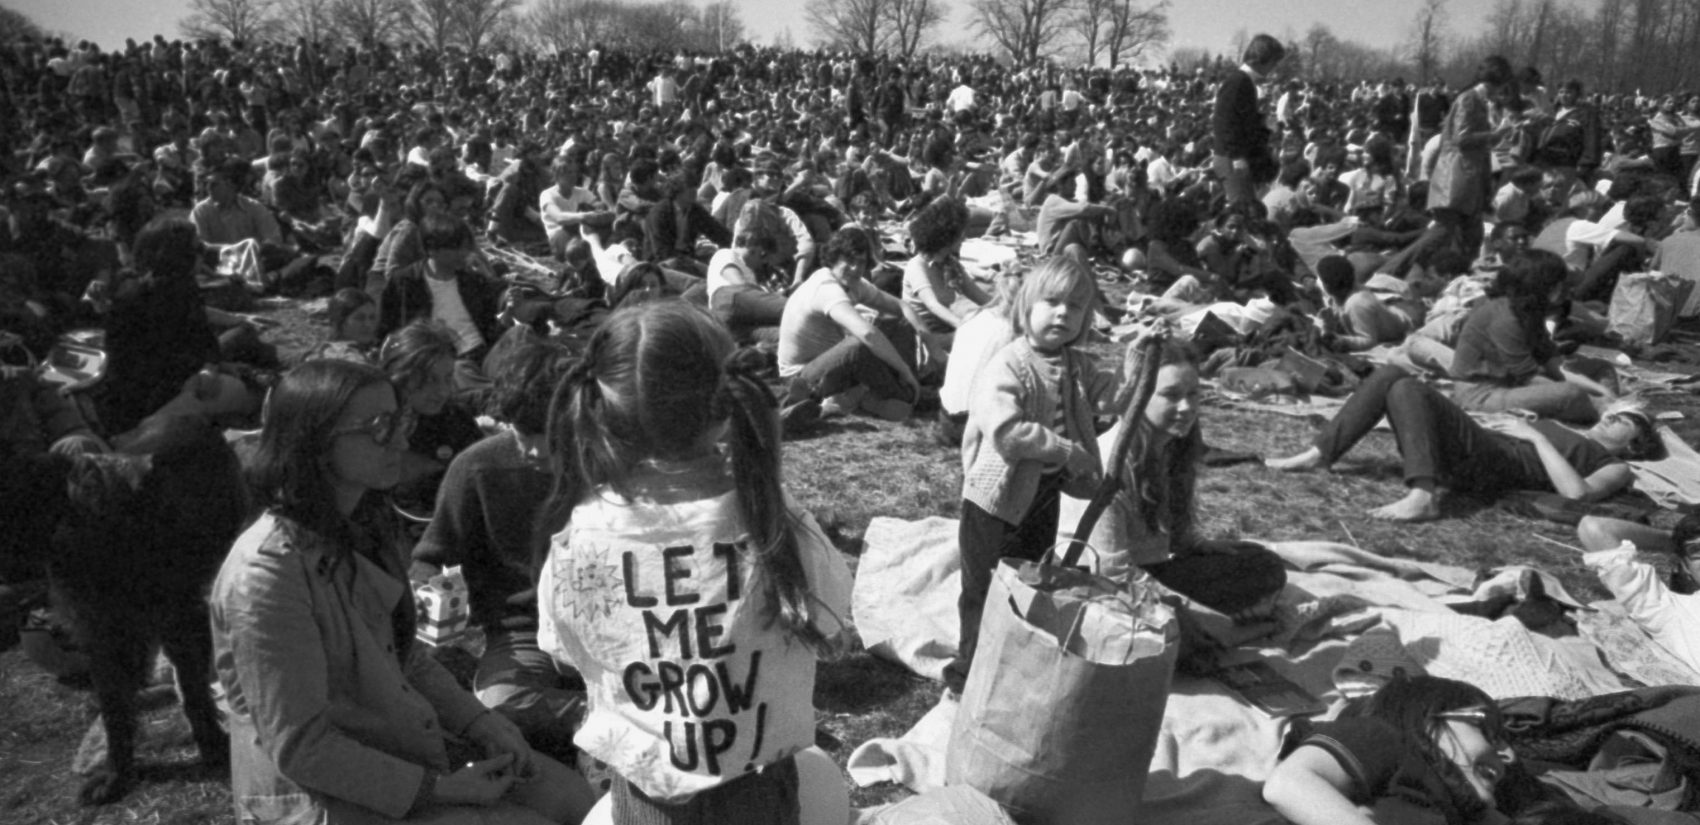 Earth Week crowd in Philadelphia, including a young girl wearing a